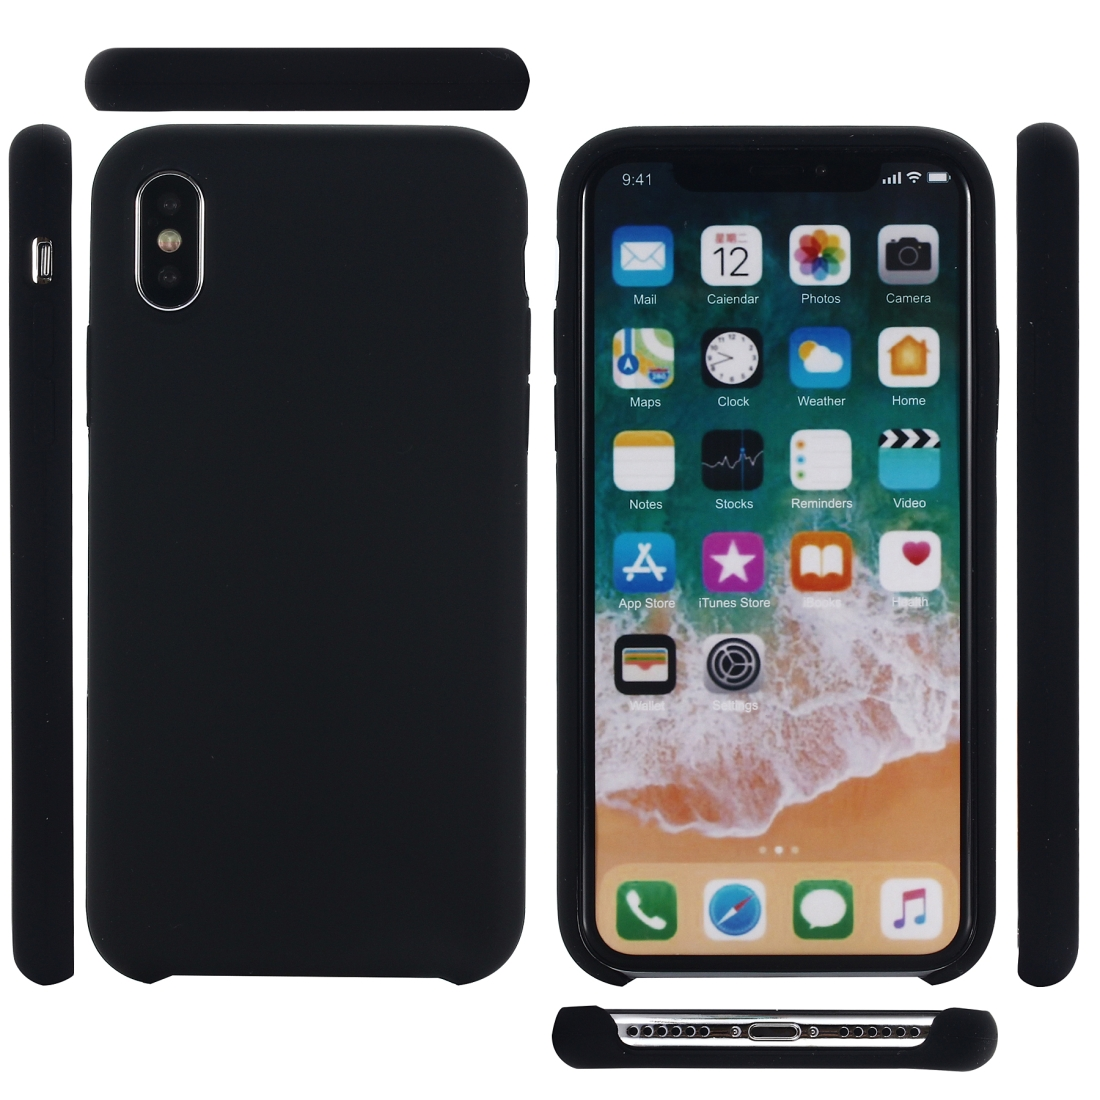 Four Corners Full Coverage Liquid Silicone Protective Case Back Cover for iPhone XR 6.1 inch (Black)